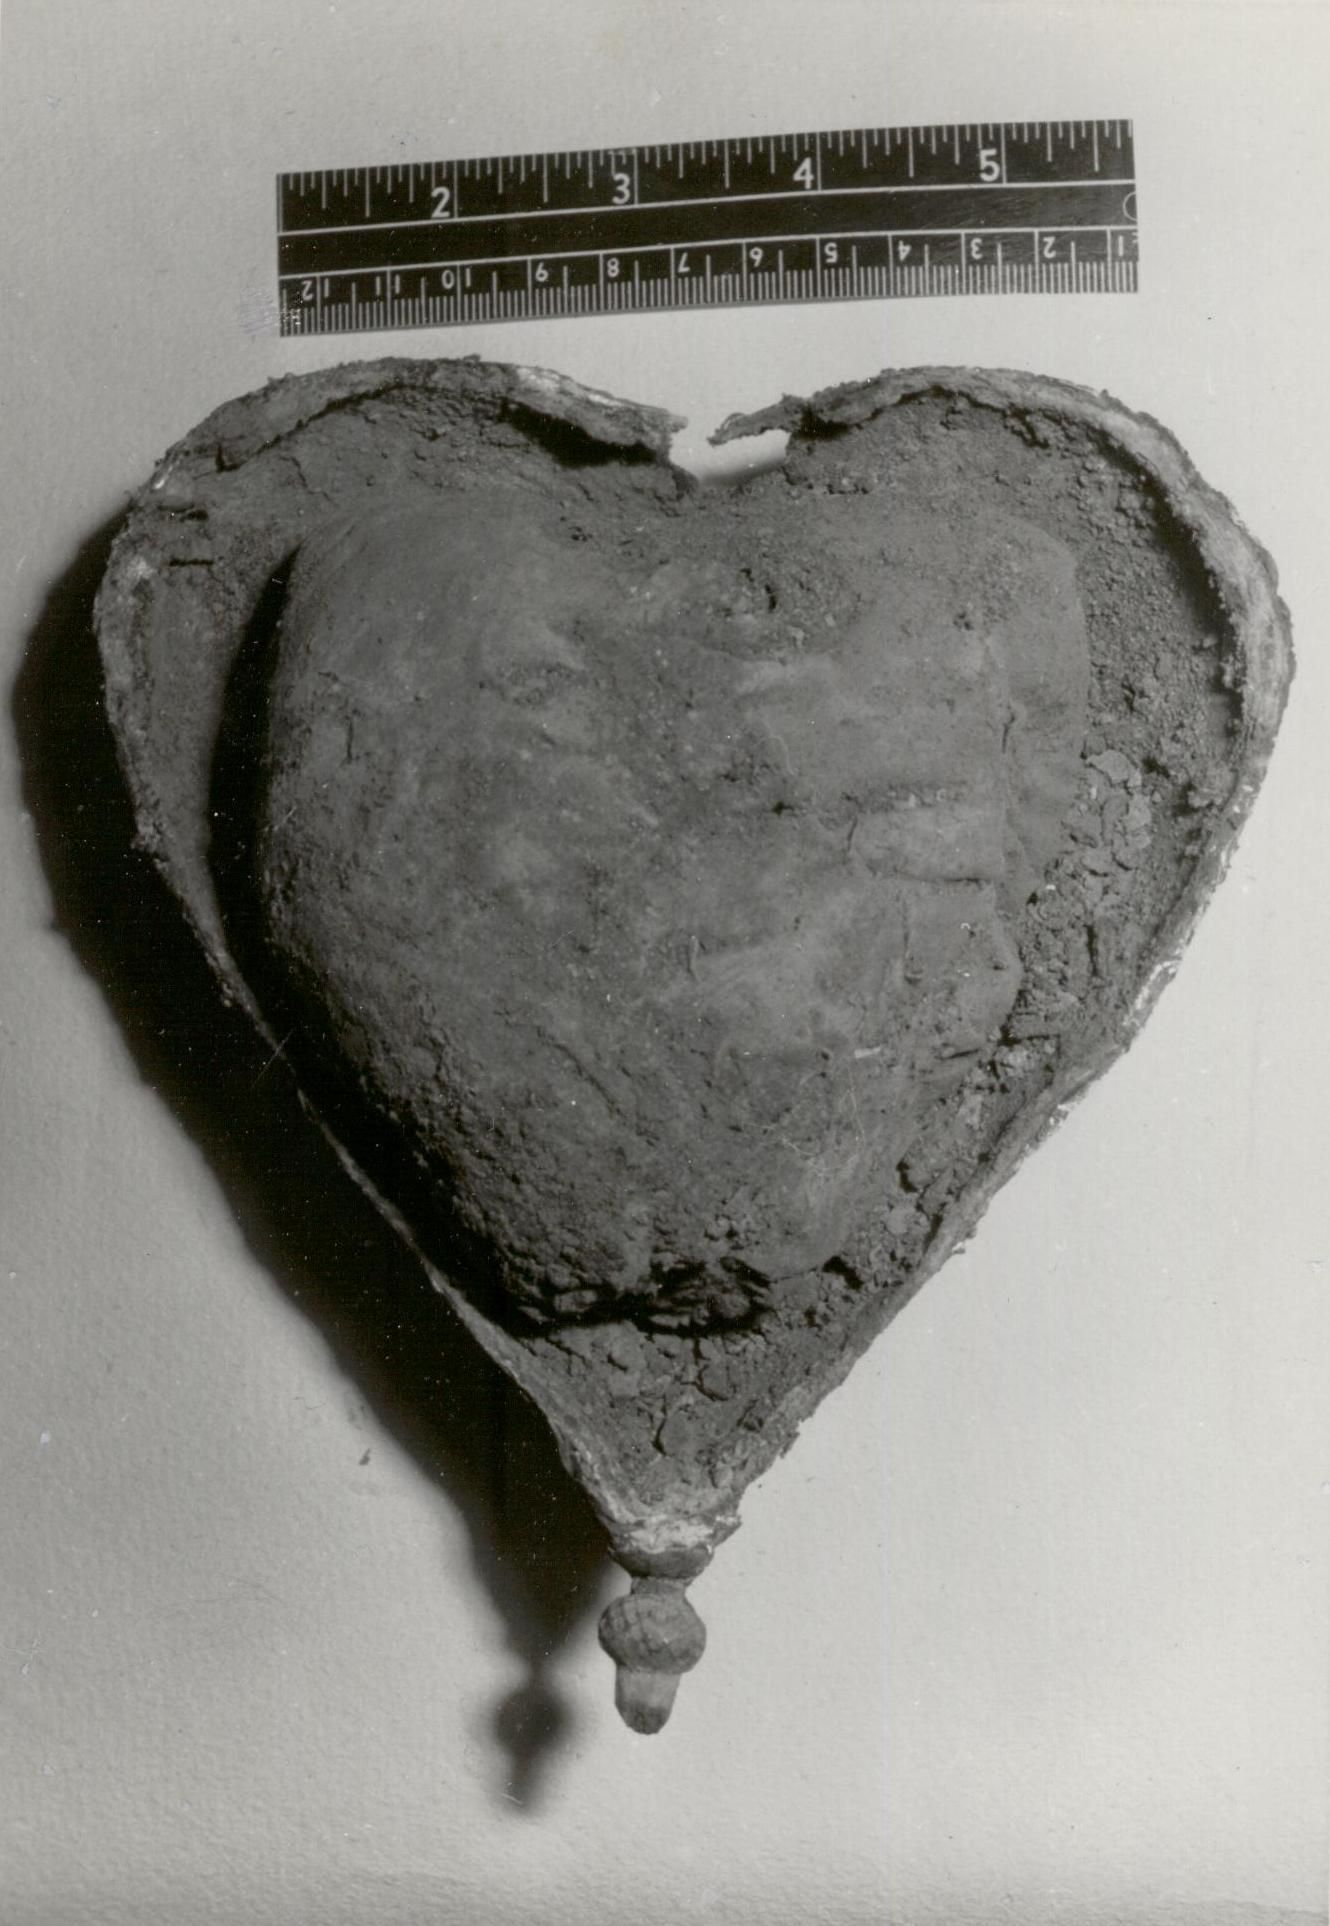 Egmont S Heart Inside The Opened Heart Shaped Lead Box